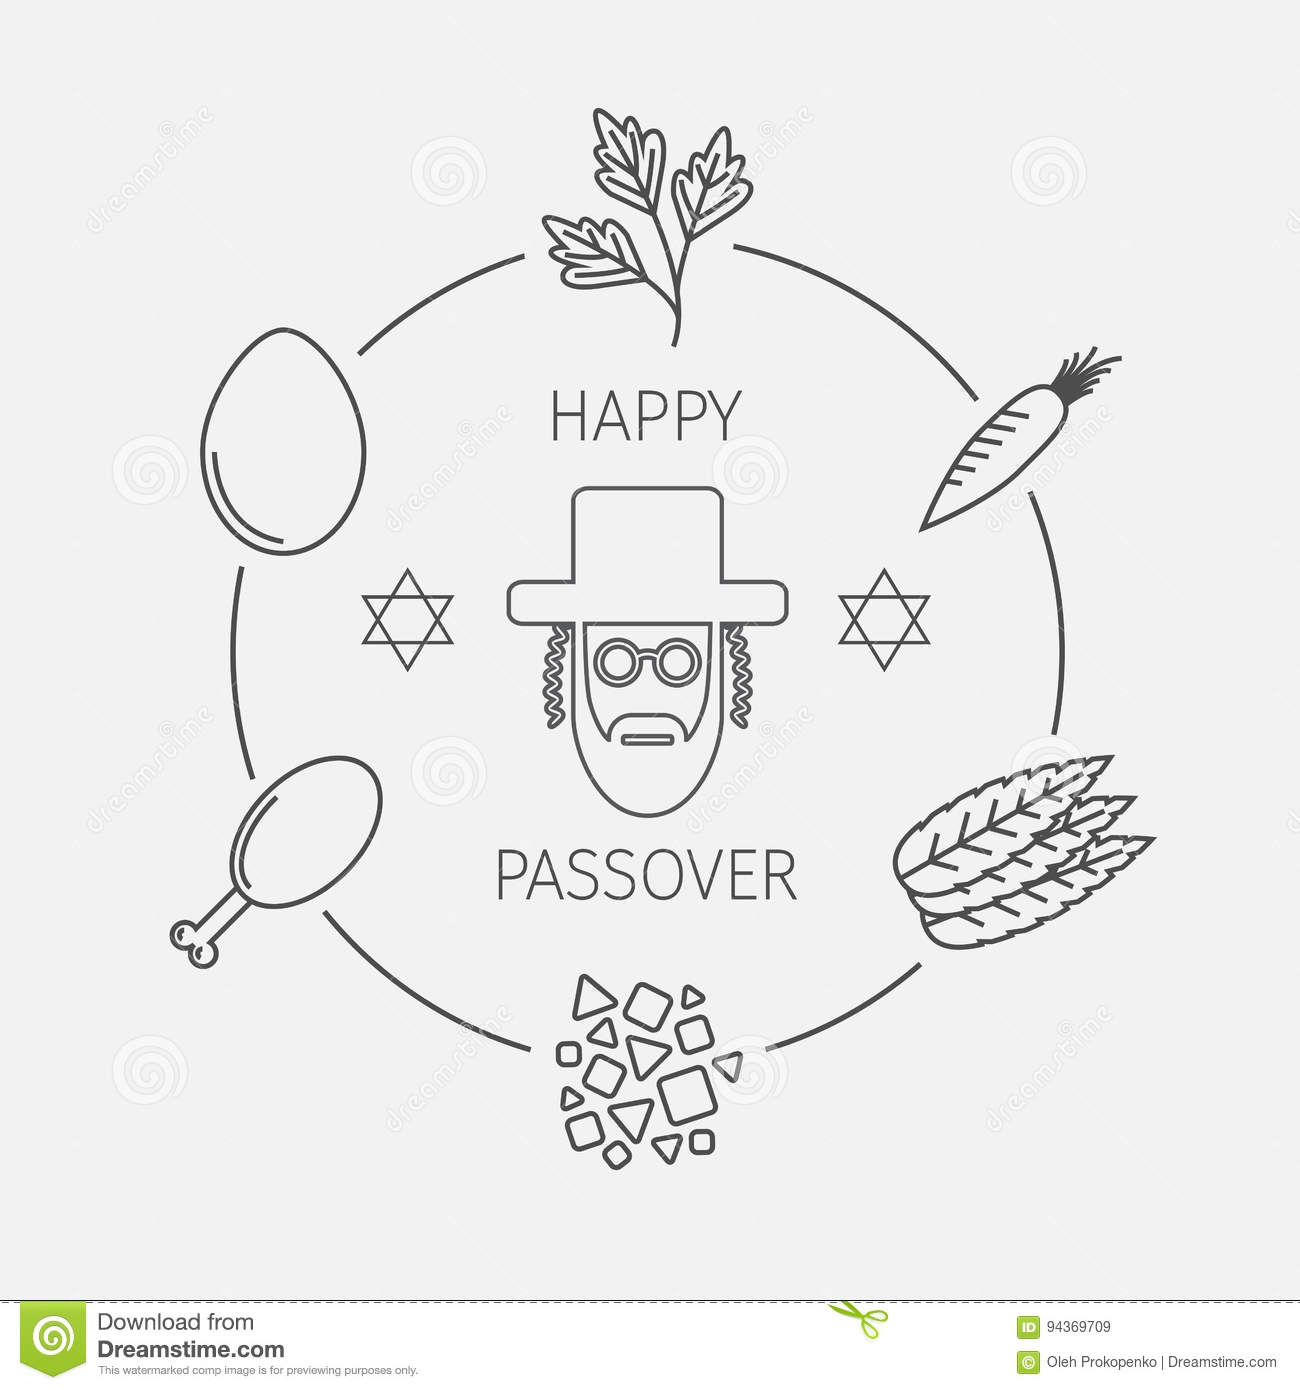 Passover seder plate with line icons vector stock vector passover seder plate with line icons vector buycottarizona